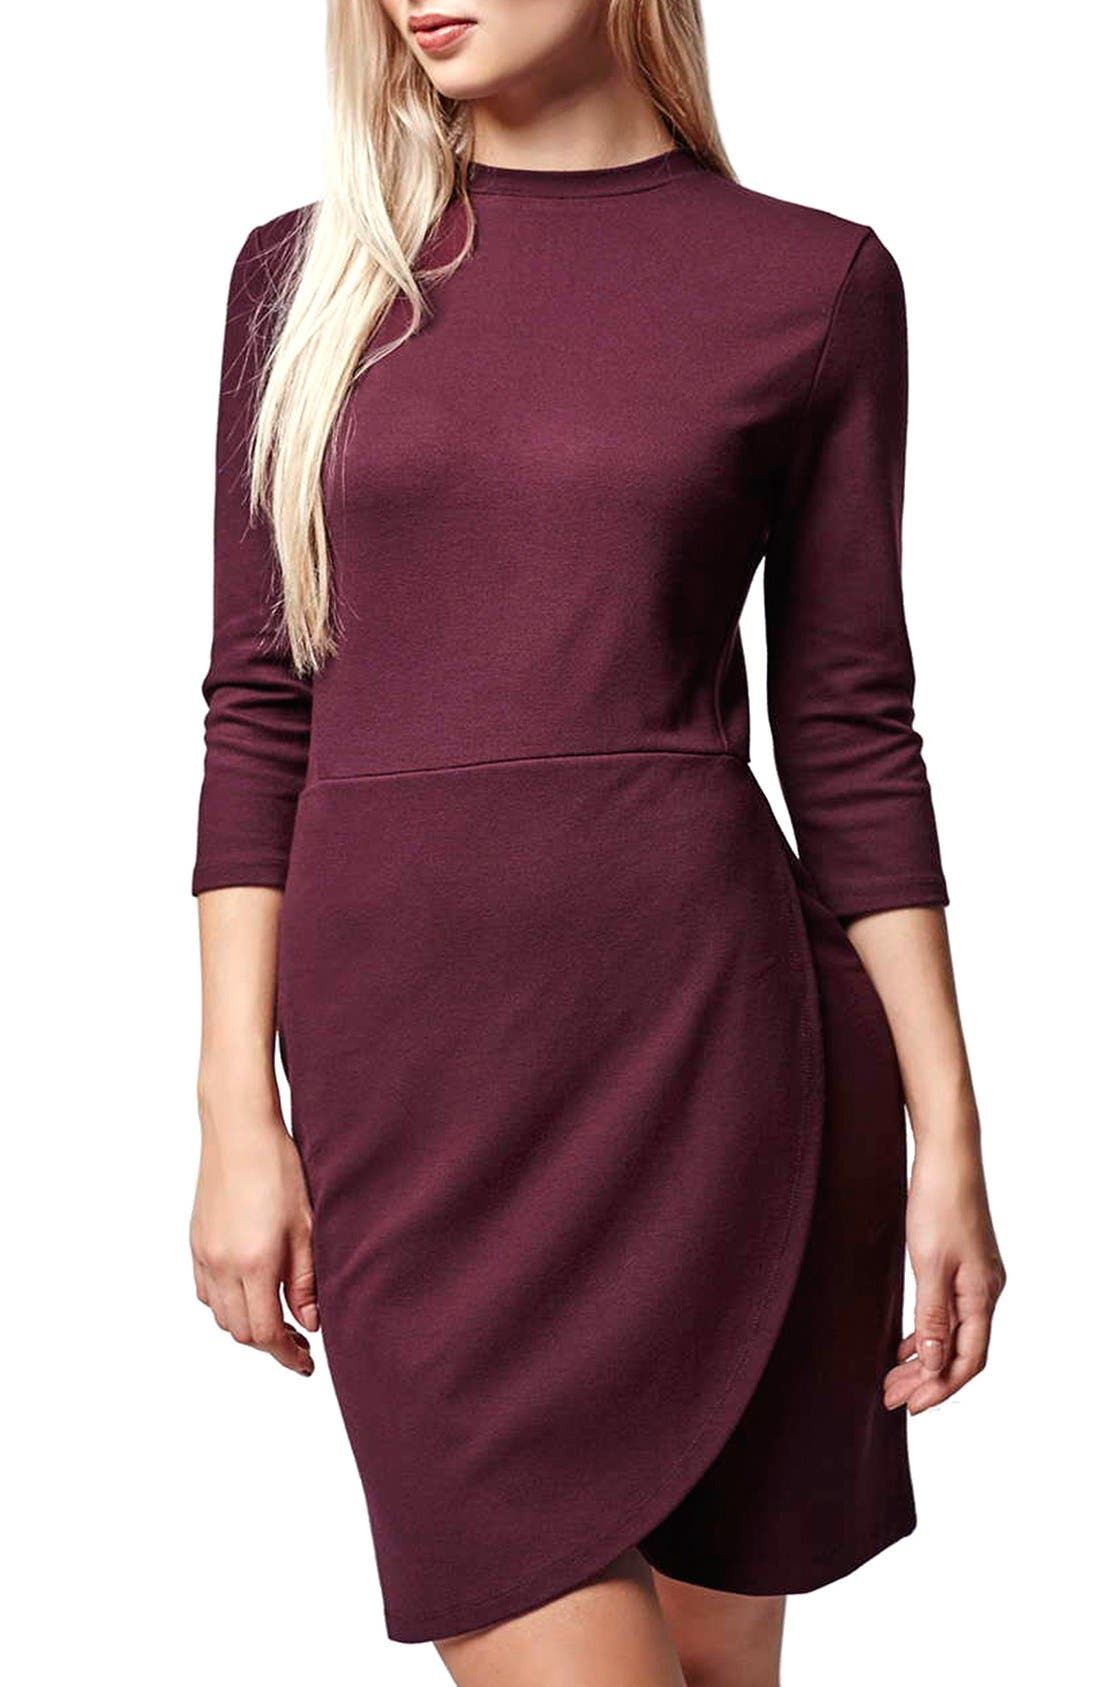 Alternate Image 1 Selected - Topshop Faux Wrap Body-Con Dress